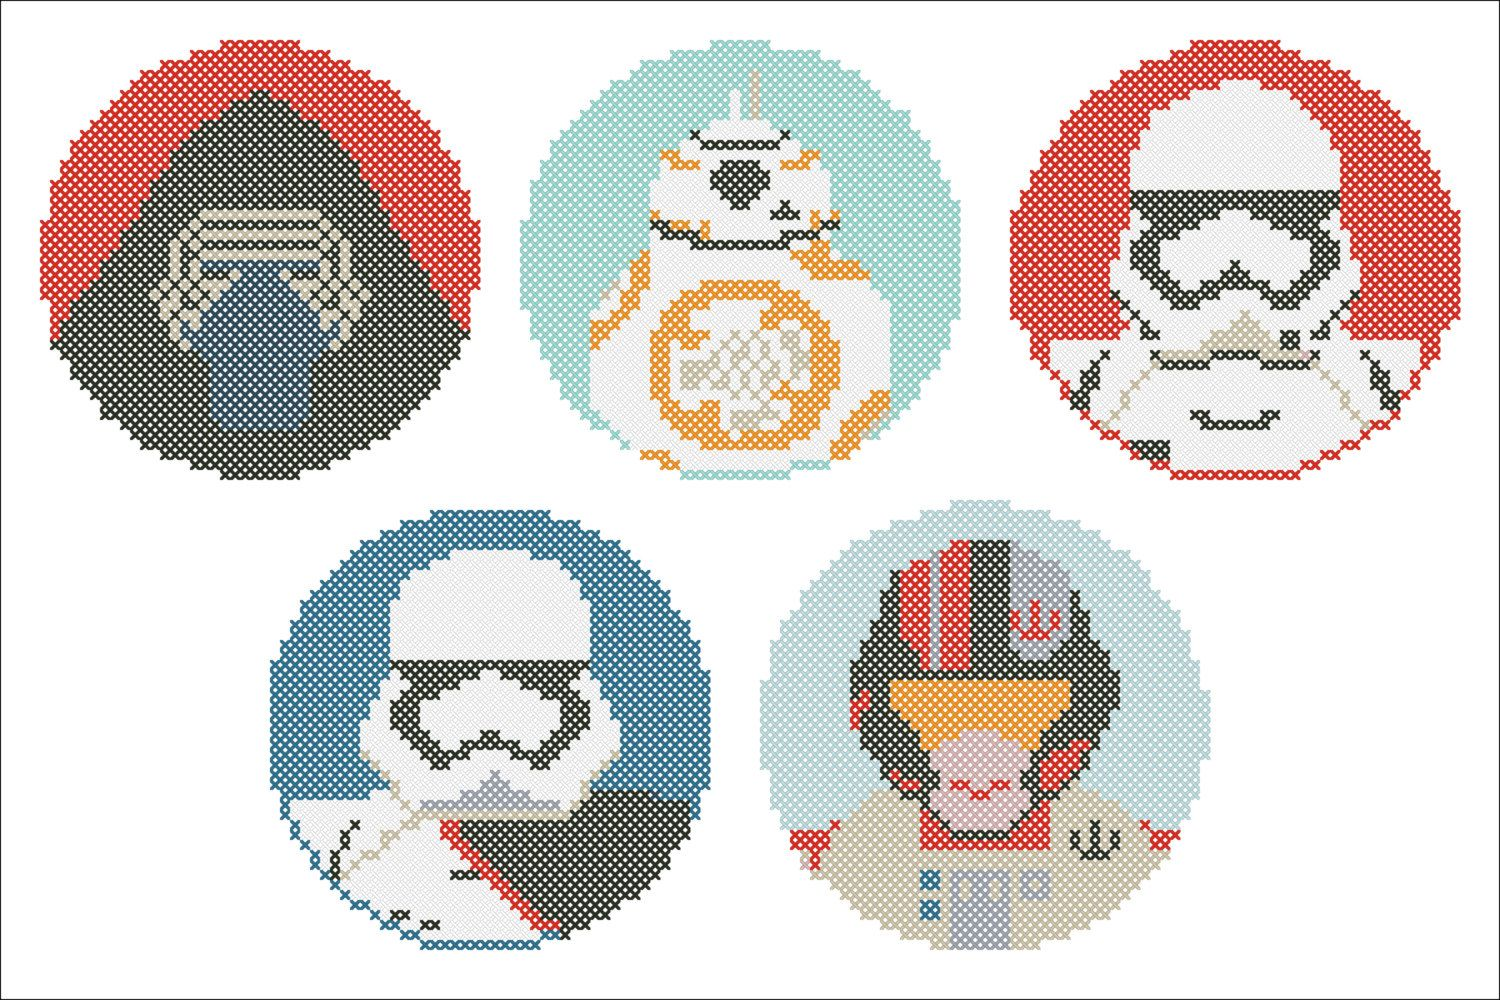 BOGO FREE! Star Wars Heroes Force Awakens characters Cross Stitch ...